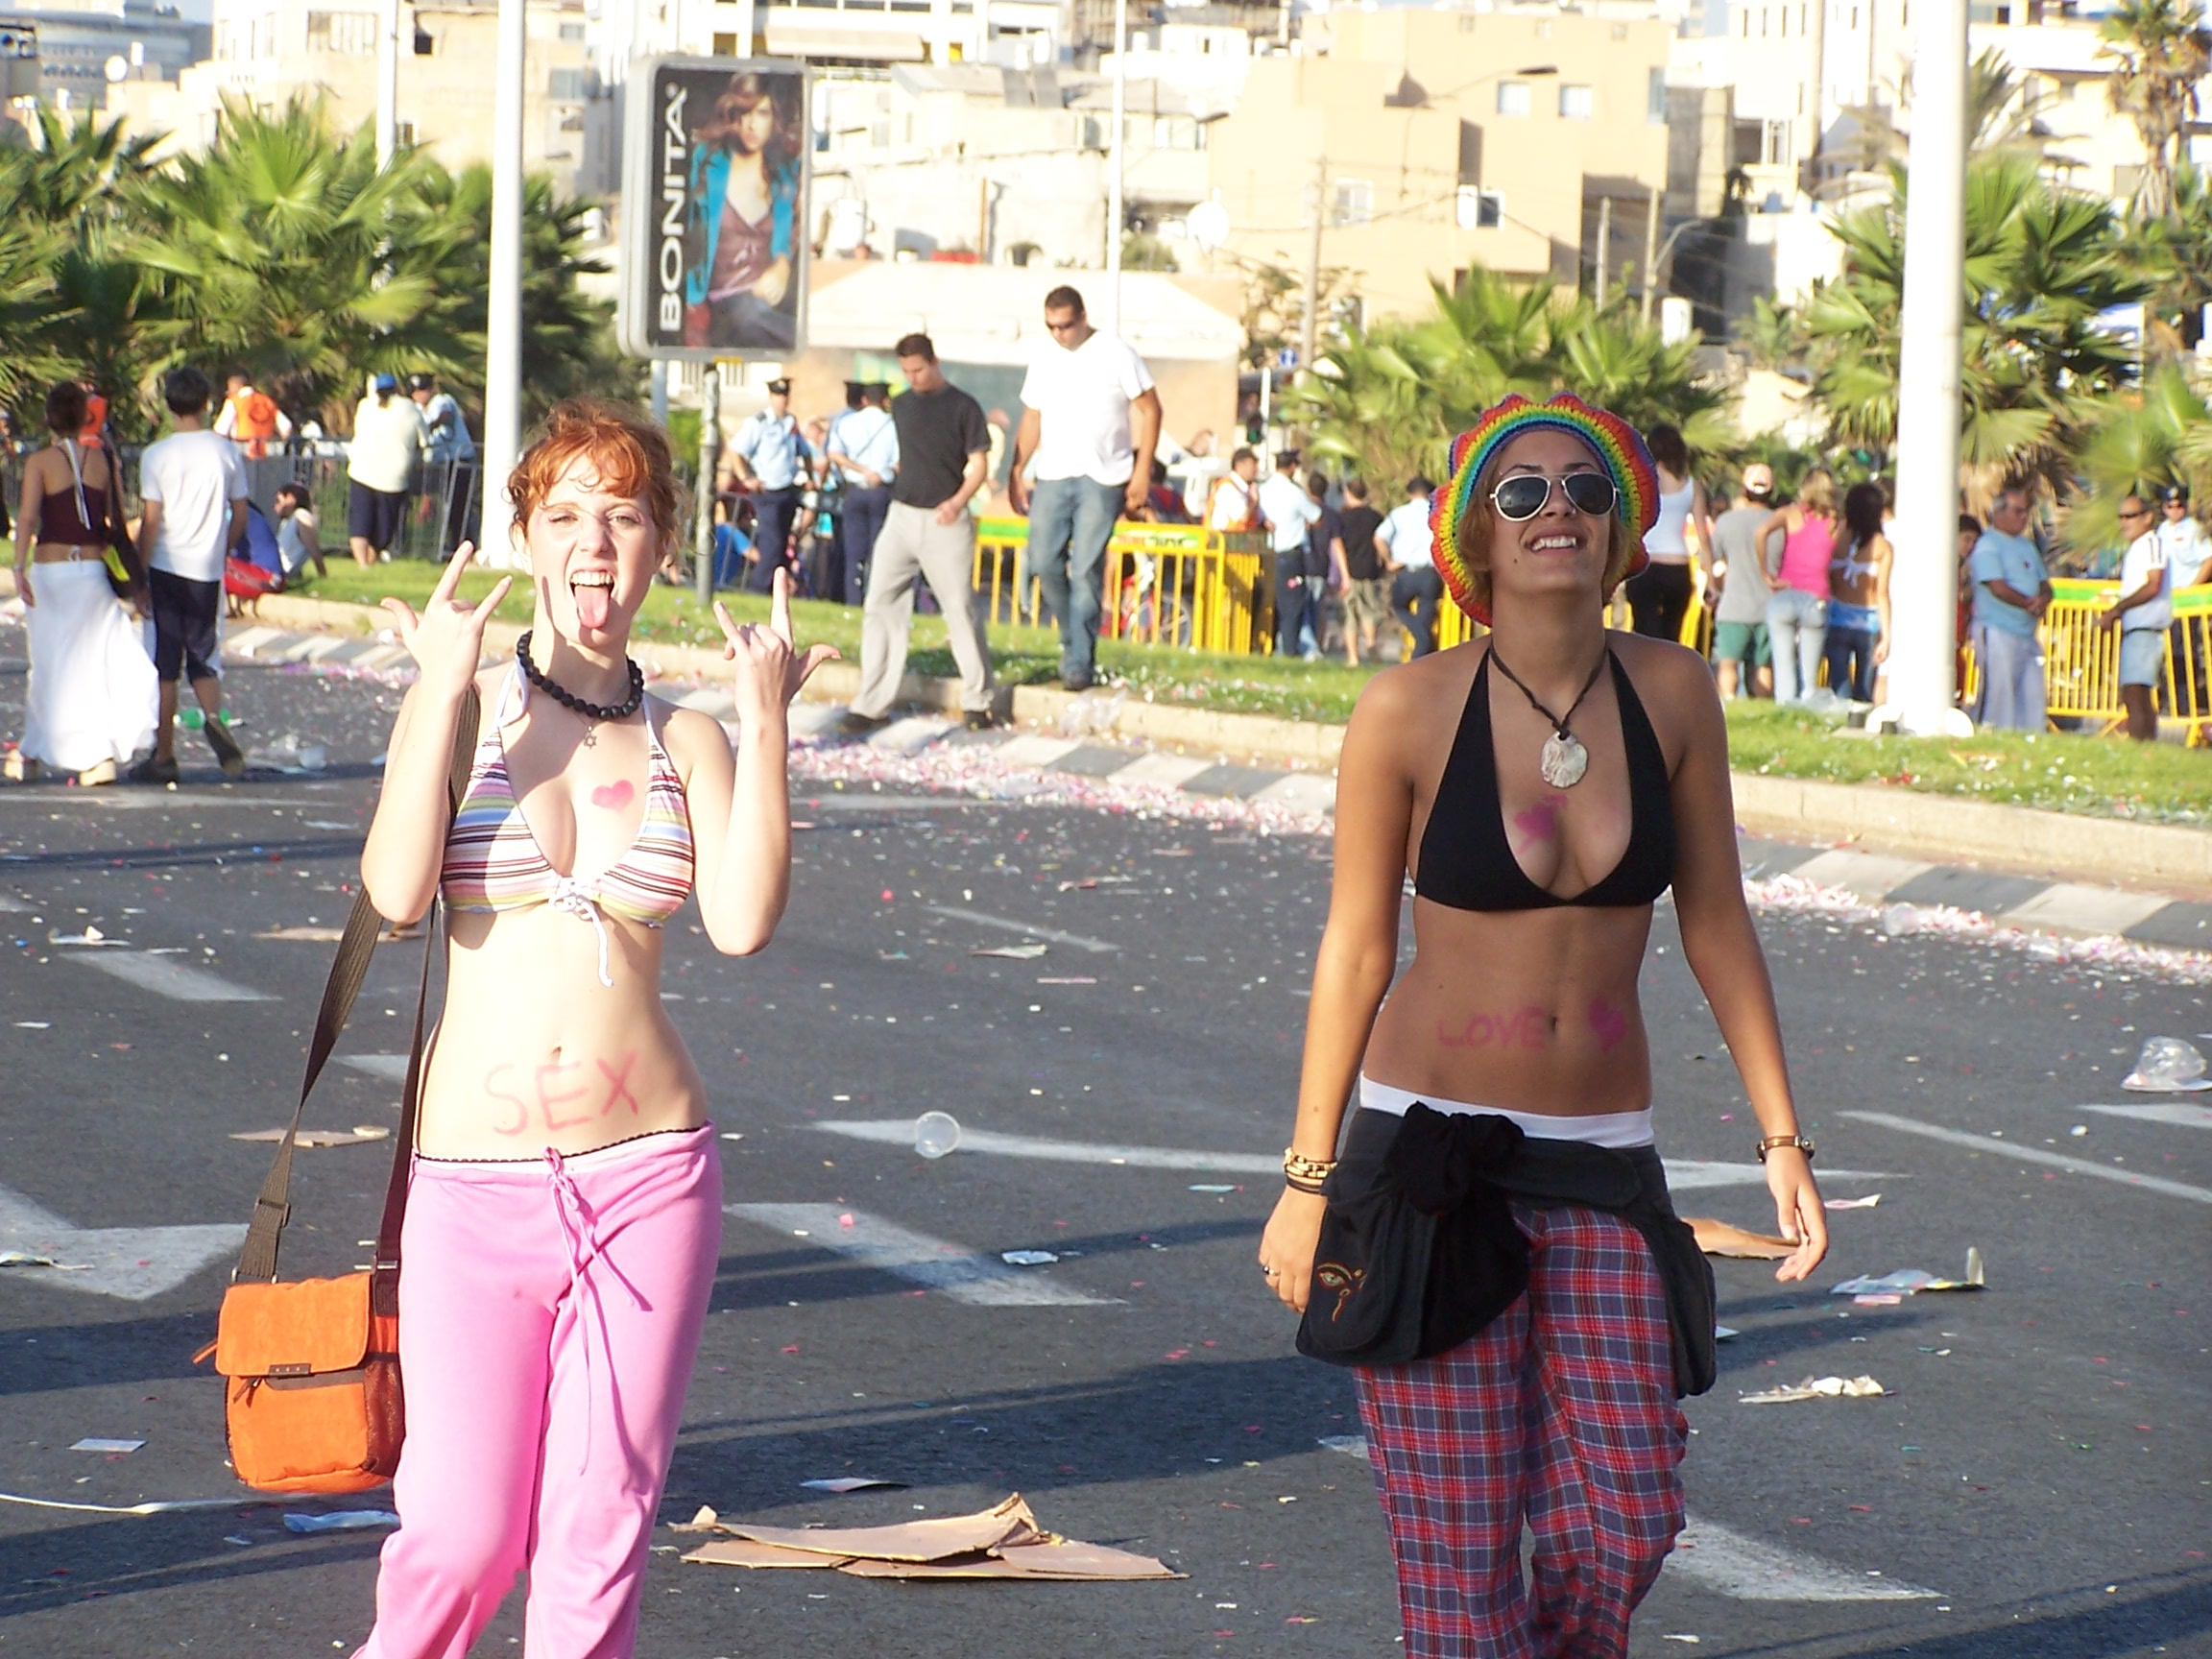 https://upload.wikimedia.org/wikipedia/commons/a/a7/Two_women_a_Tel_Aviv_love_parade_01.jpg